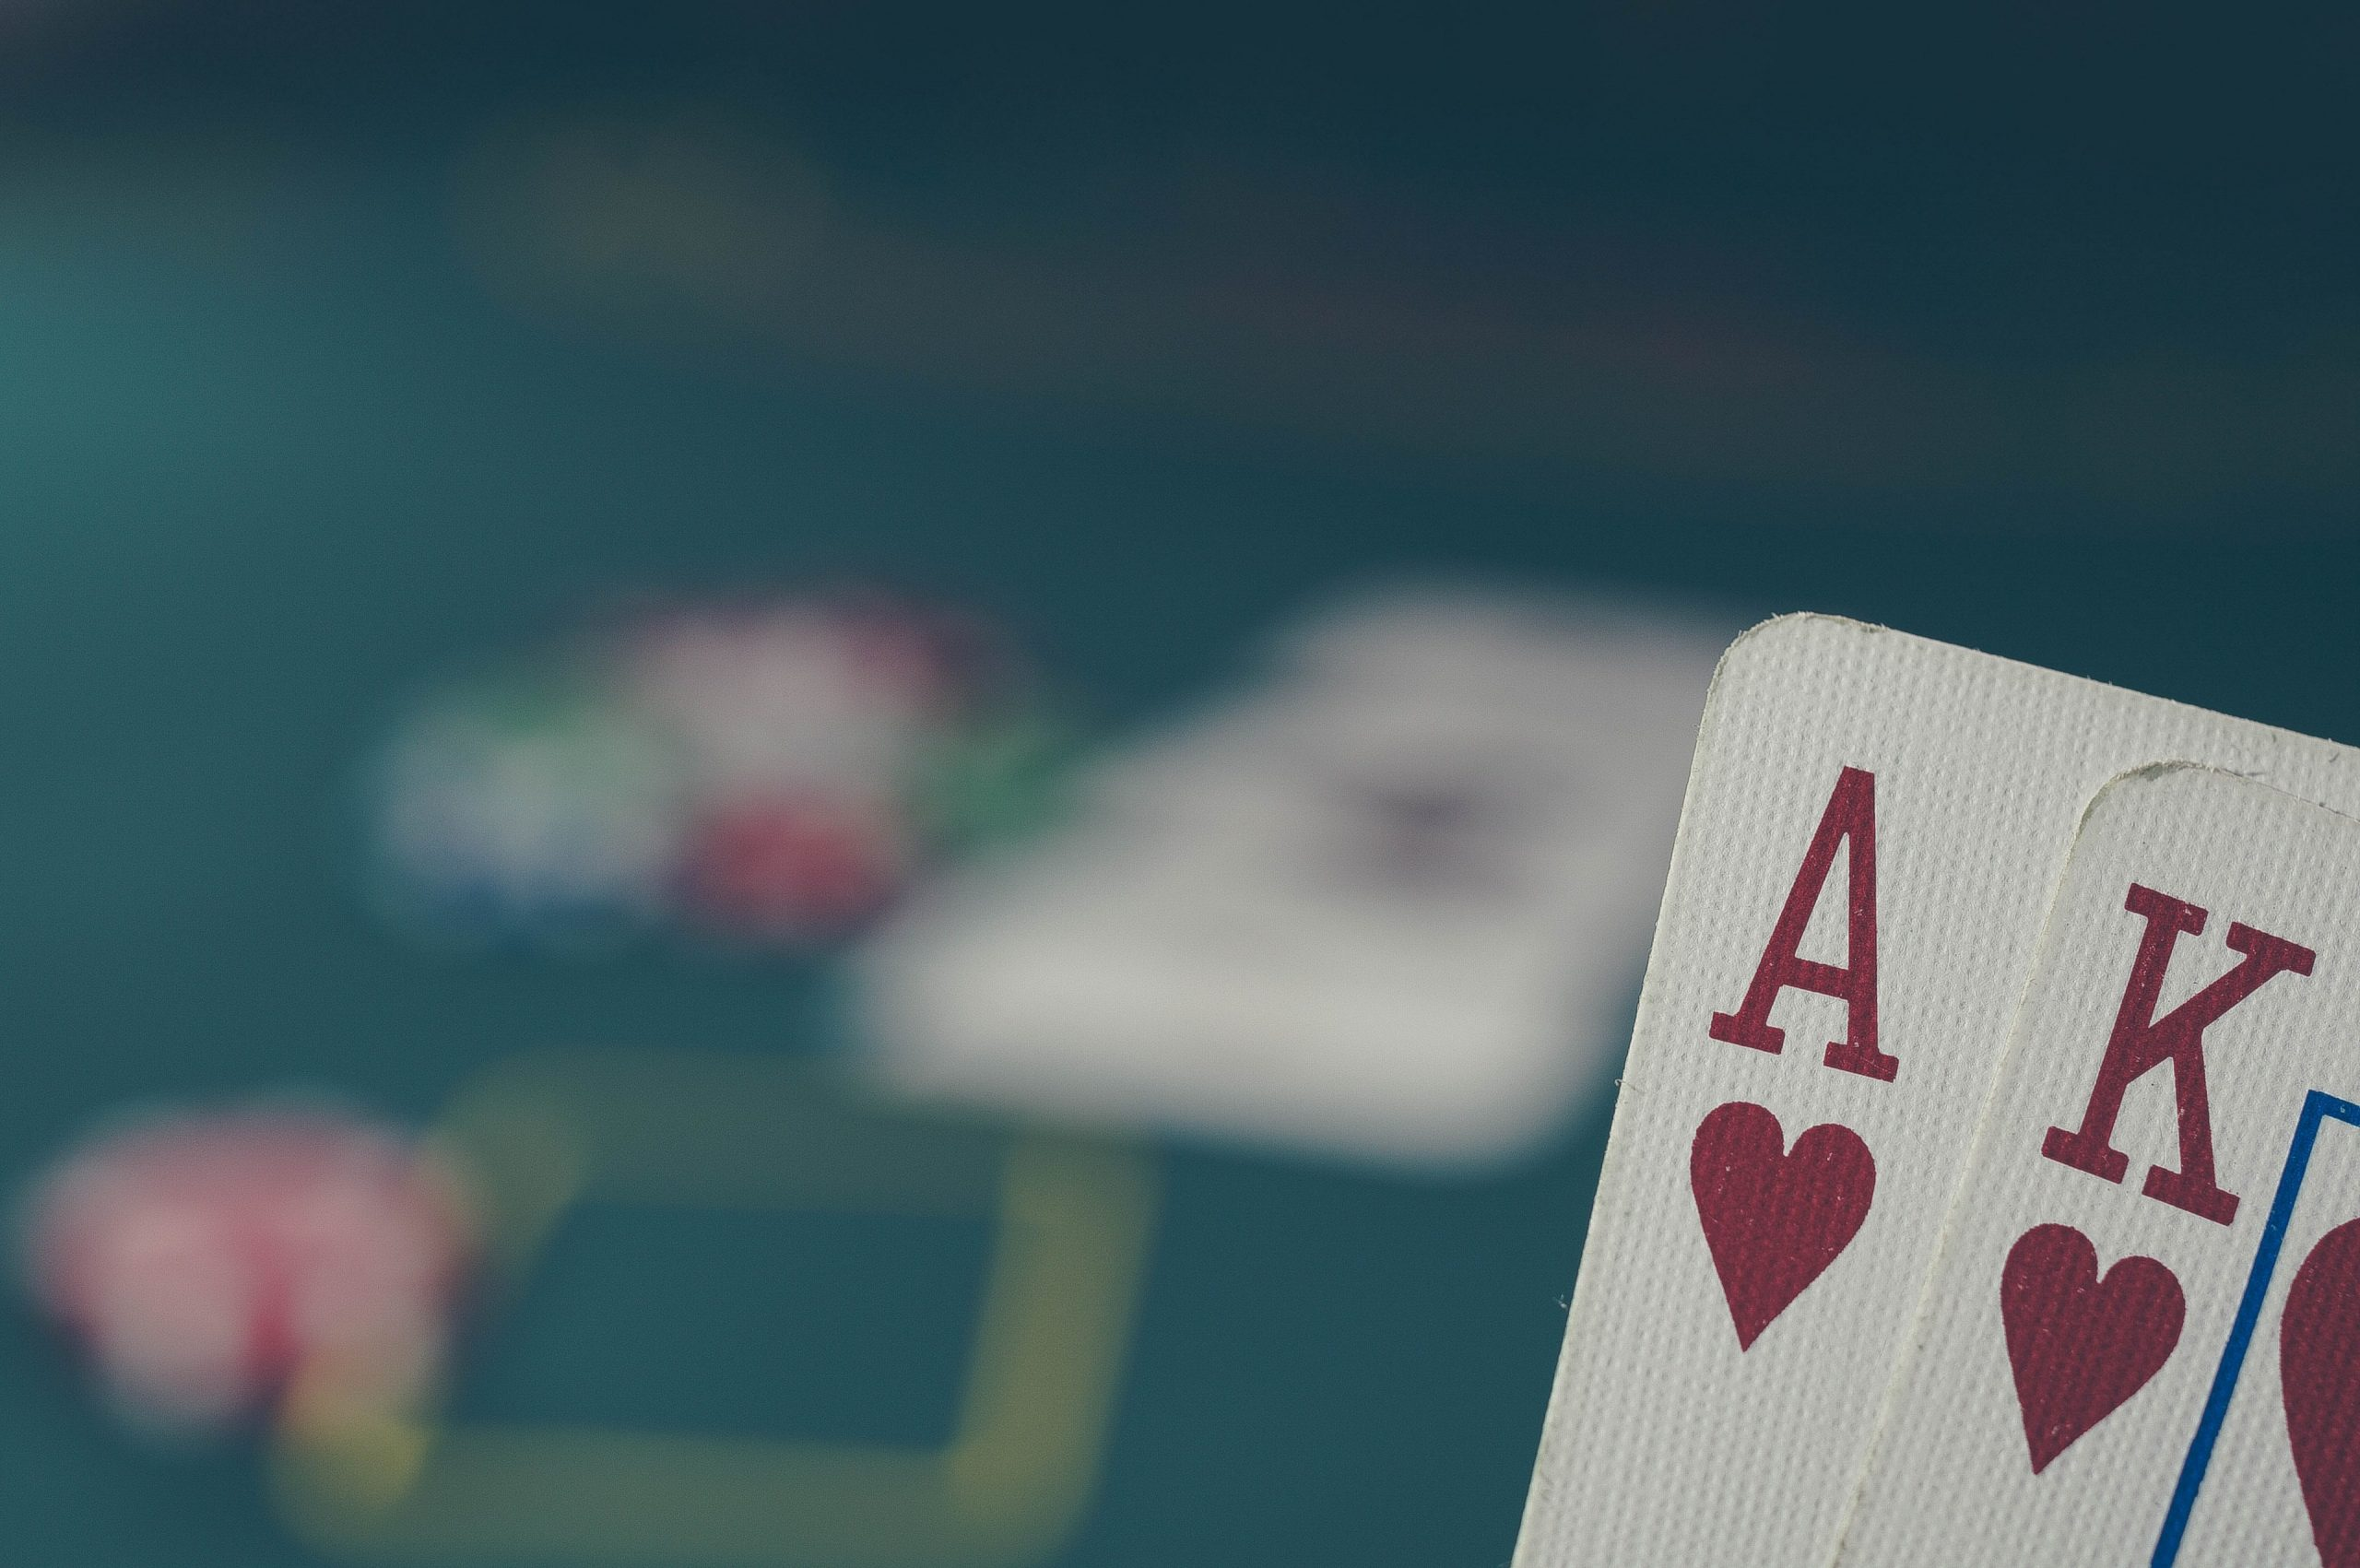 International Casino Gaming Market 2020-2020 - Analysis And Markets